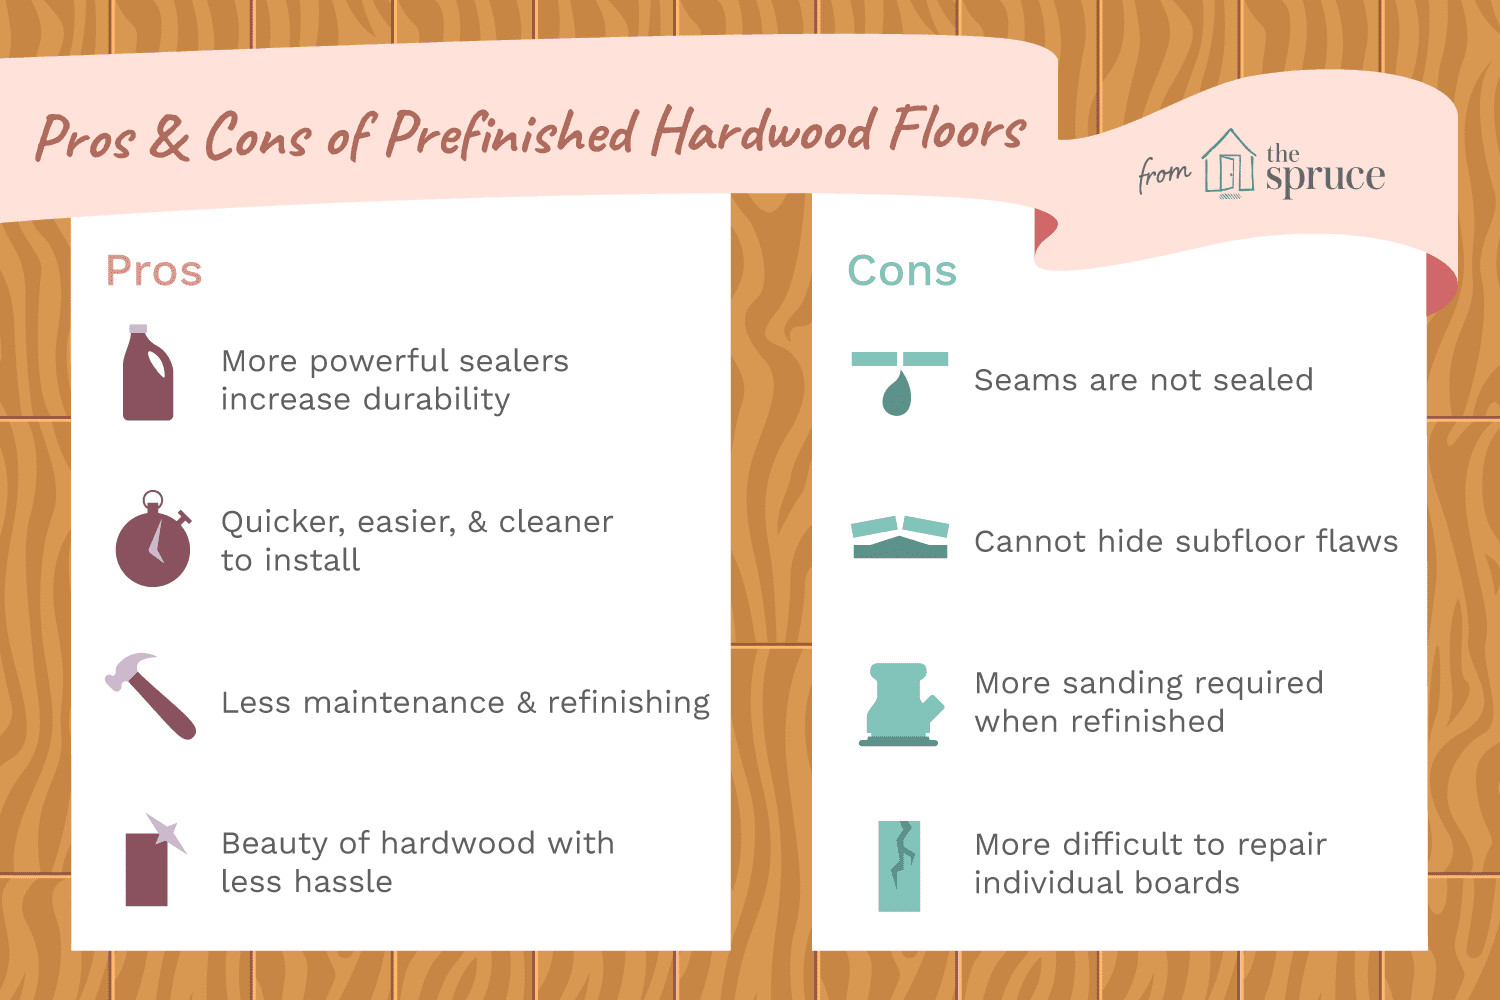 hardwood floor refinishing okc of the pros and cons of prefinished hardwood flooring within prefinished hardwood floors